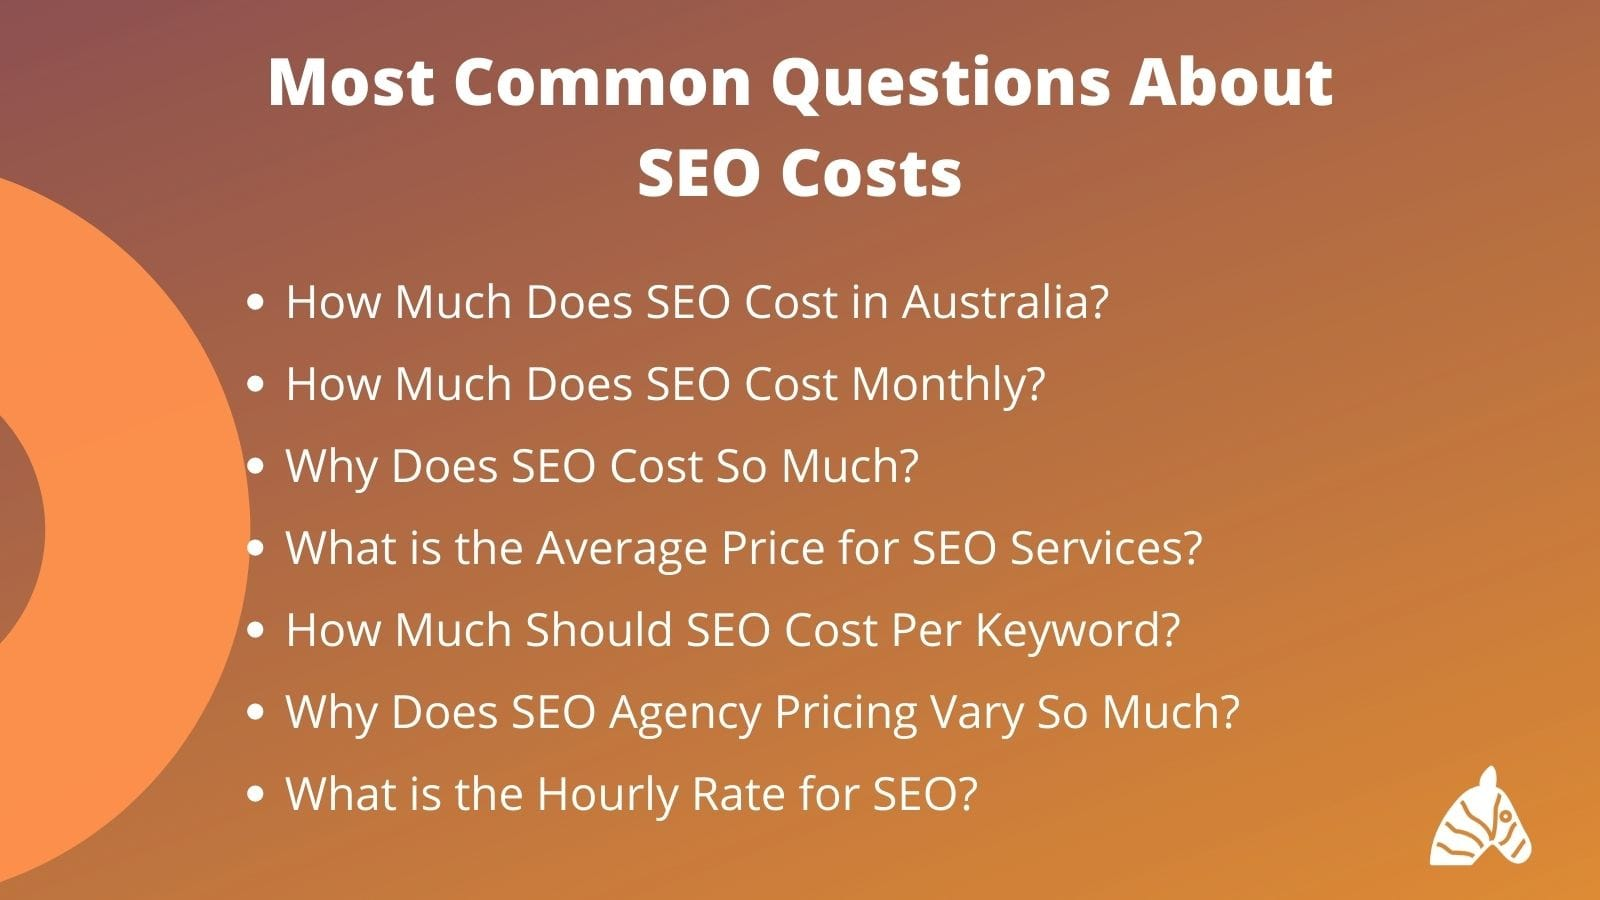 Most common questions about the cost of SEO in Australia